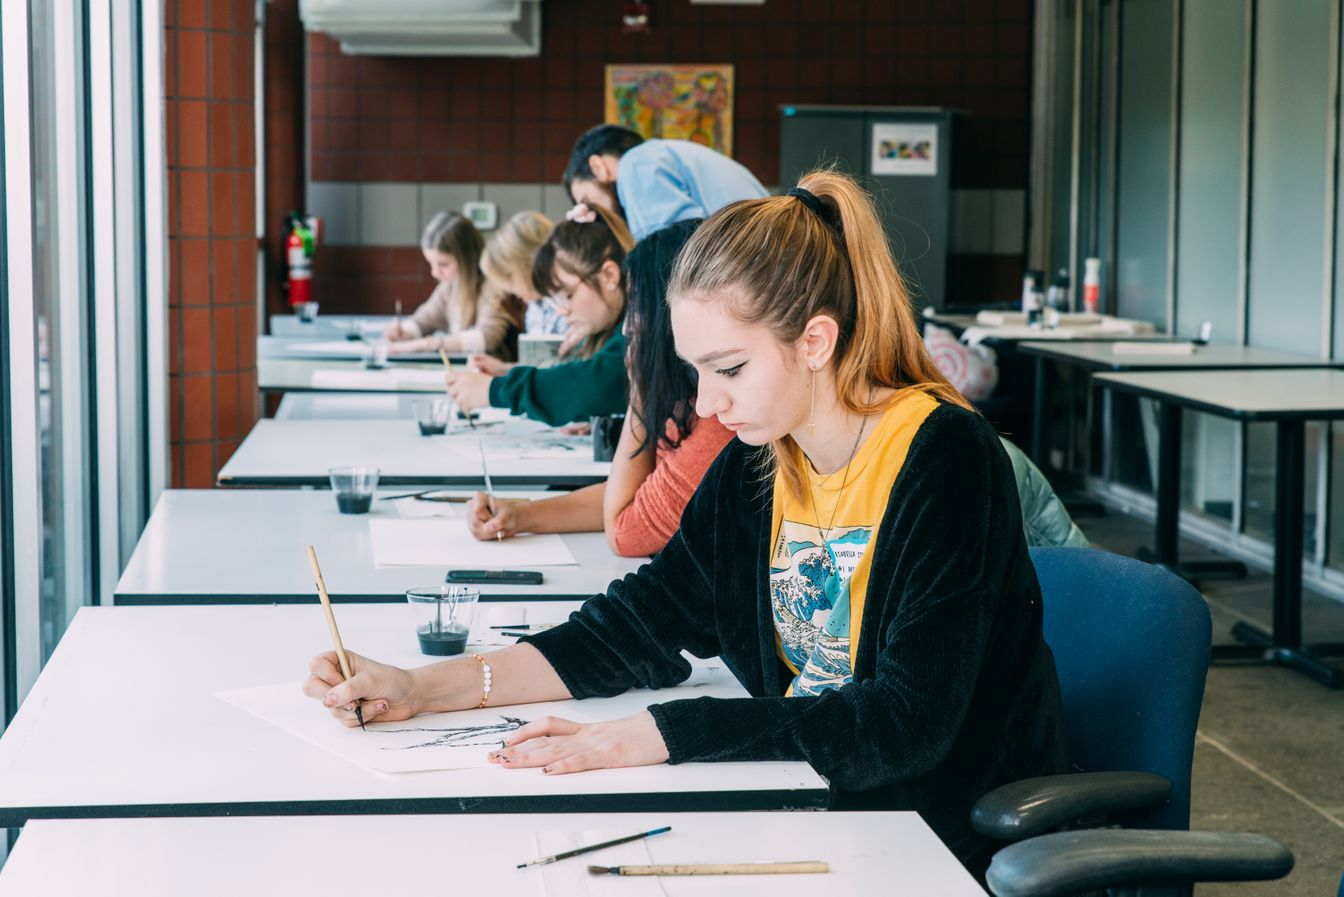 Harcum College's 'Art & Design Experience' Offers Immersive Workshops for Prospective Students